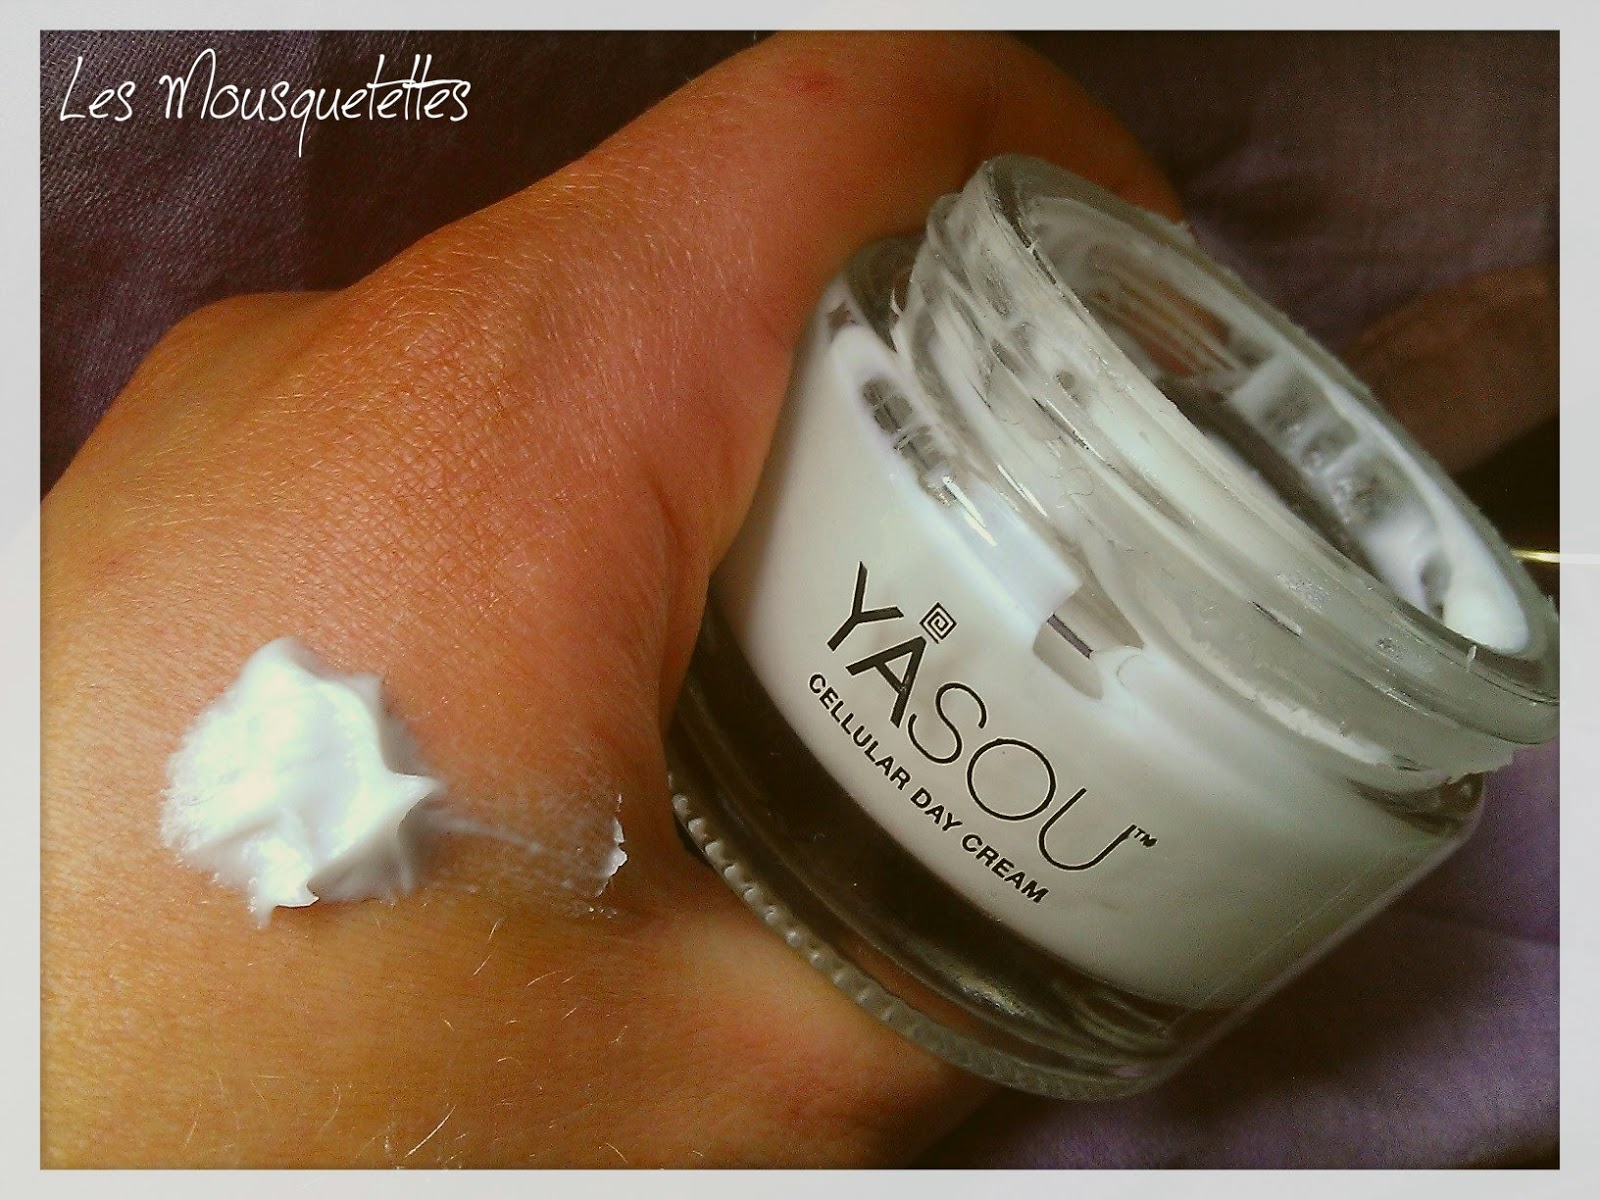 Cellular Day Cream Yasou Skincare - Les Mousquetettes©